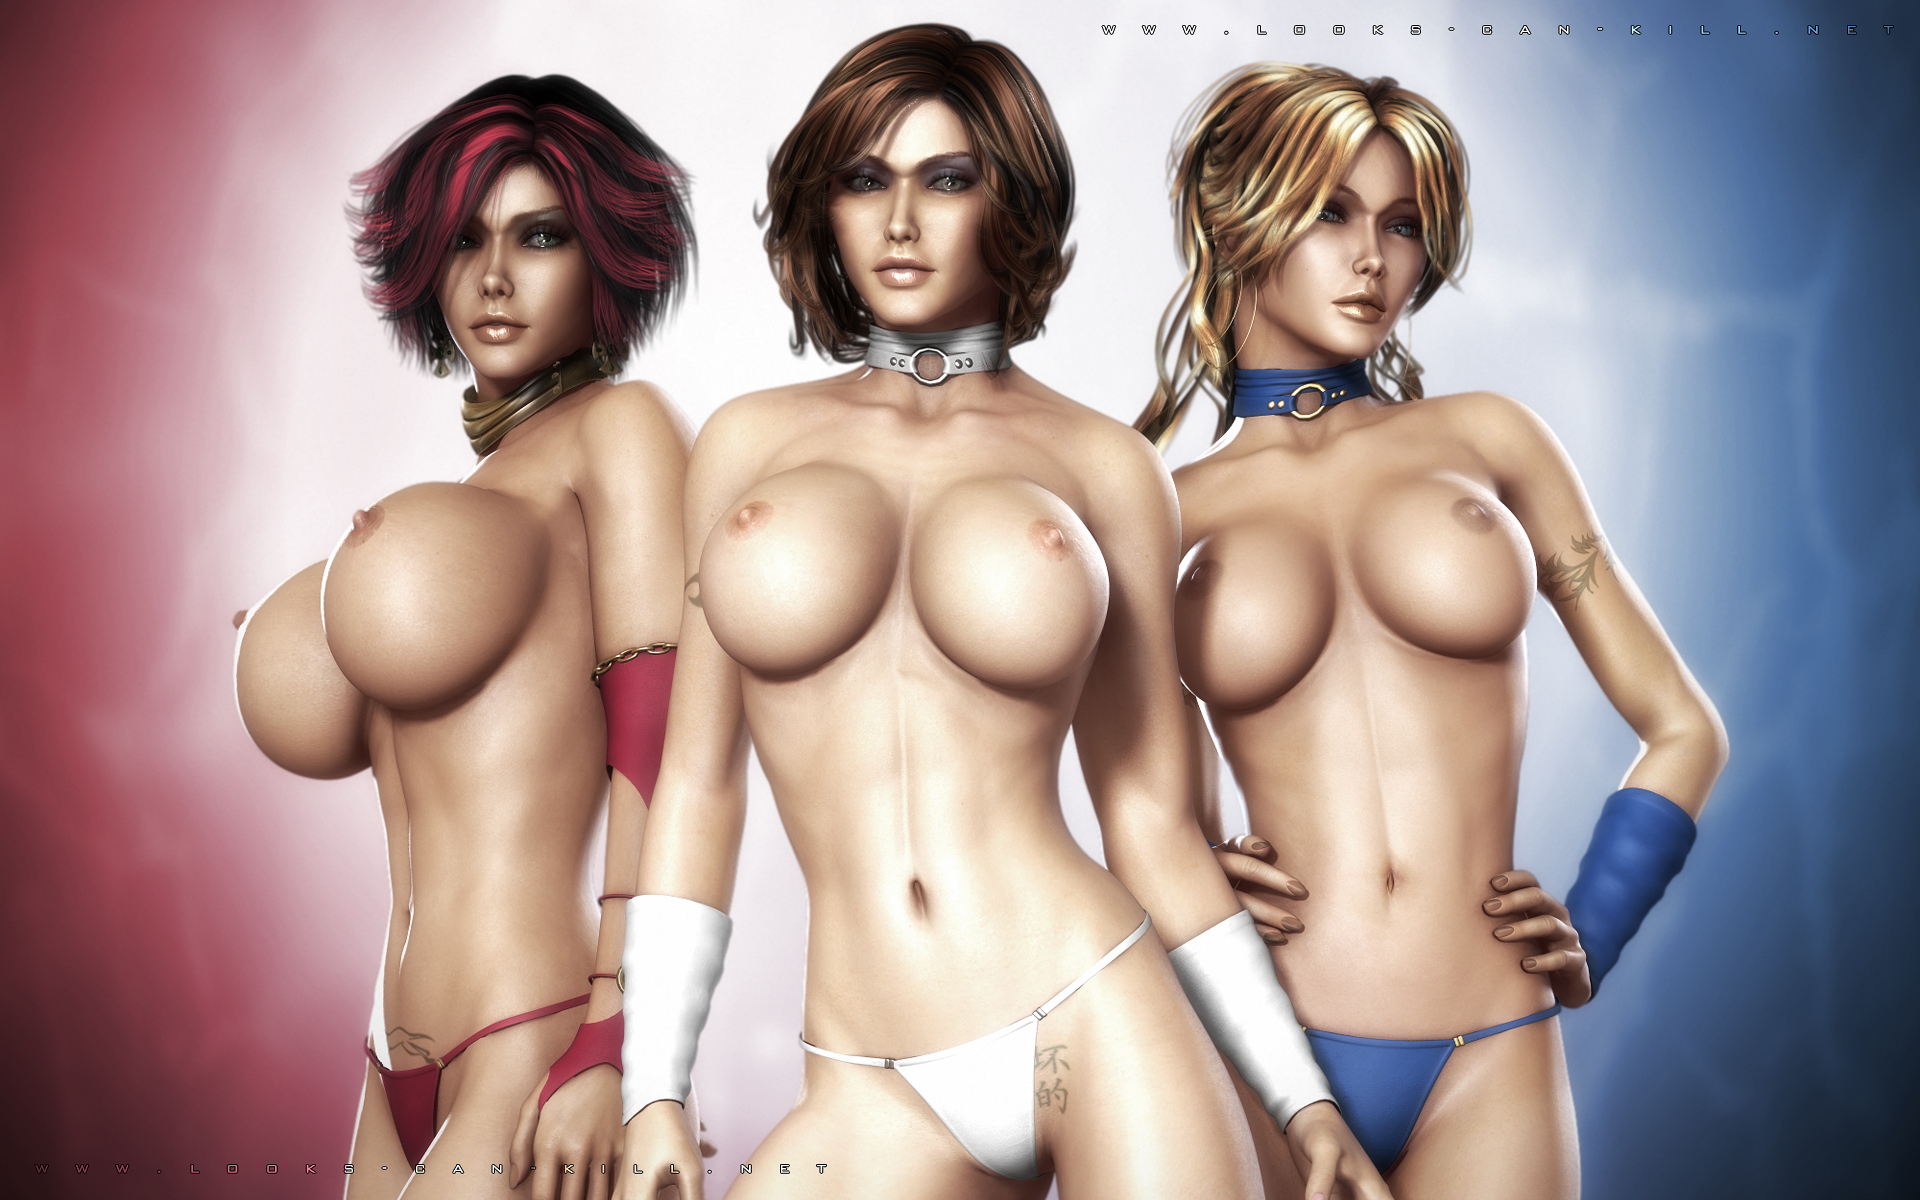 Sexy nude fantastic 4 cartoon pix xxx videos